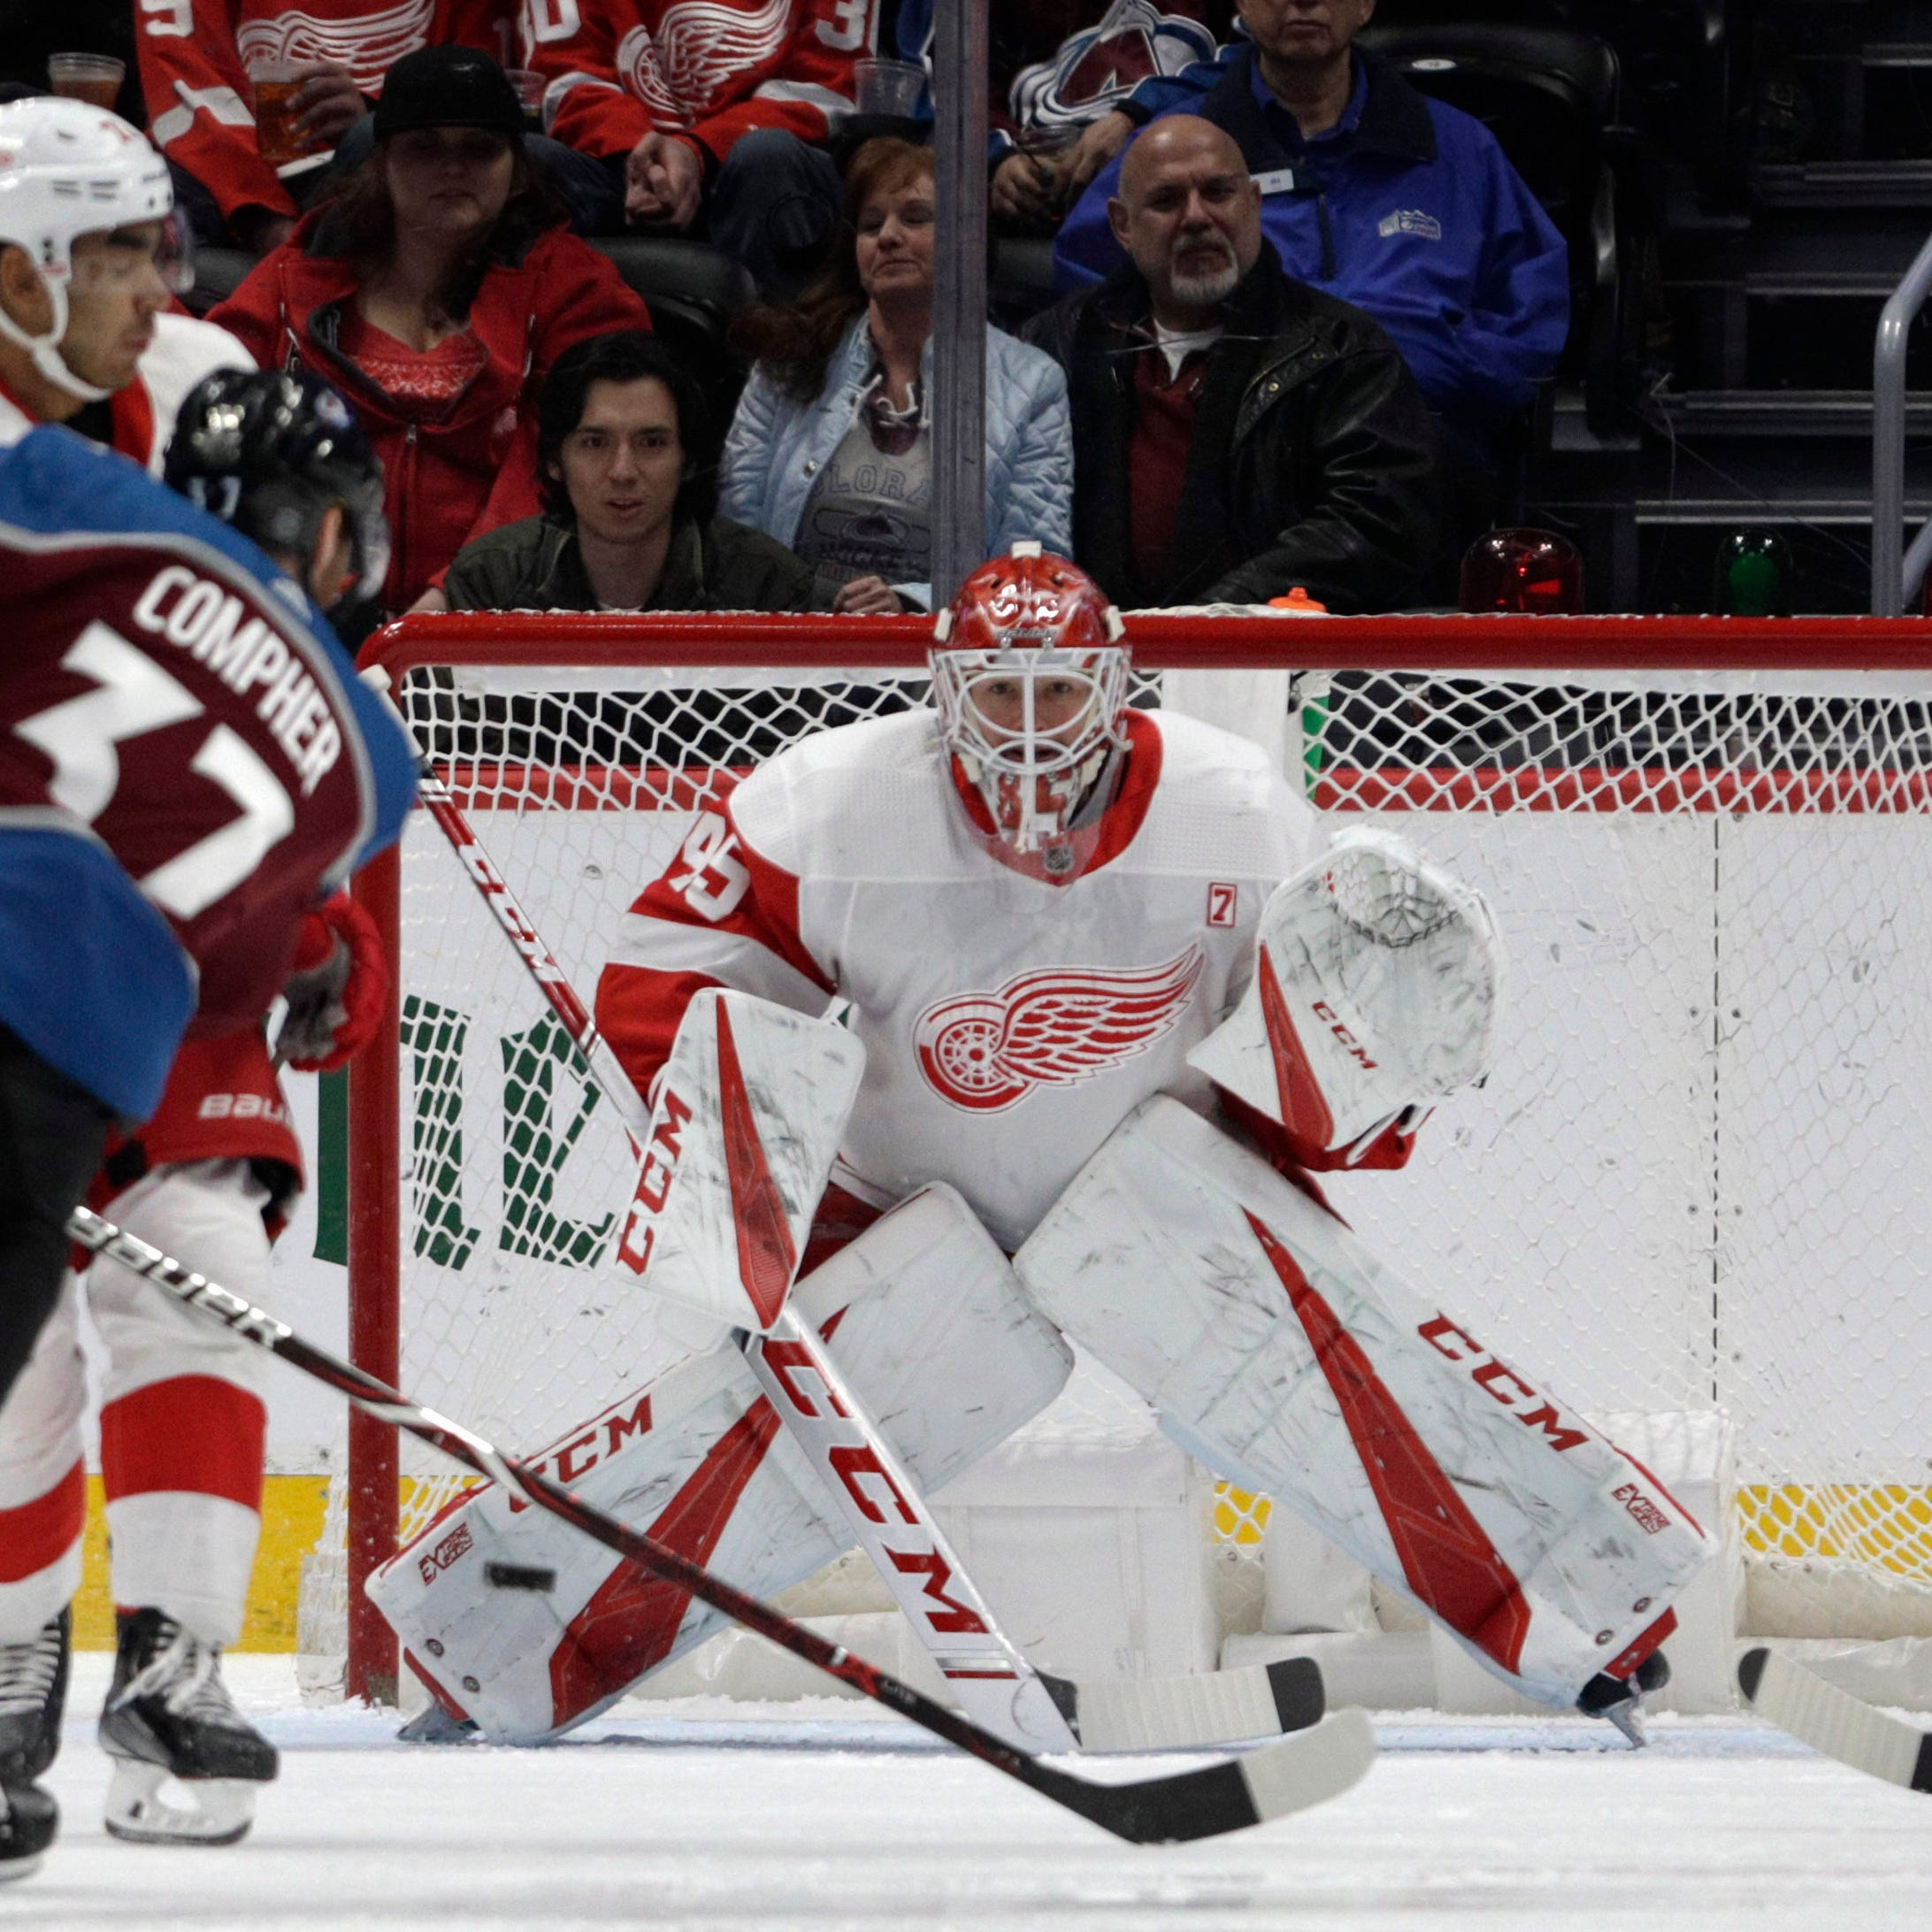 Zadina nets first goal, Red Wings fall in OT to Avalanche as losing skid reaches 8